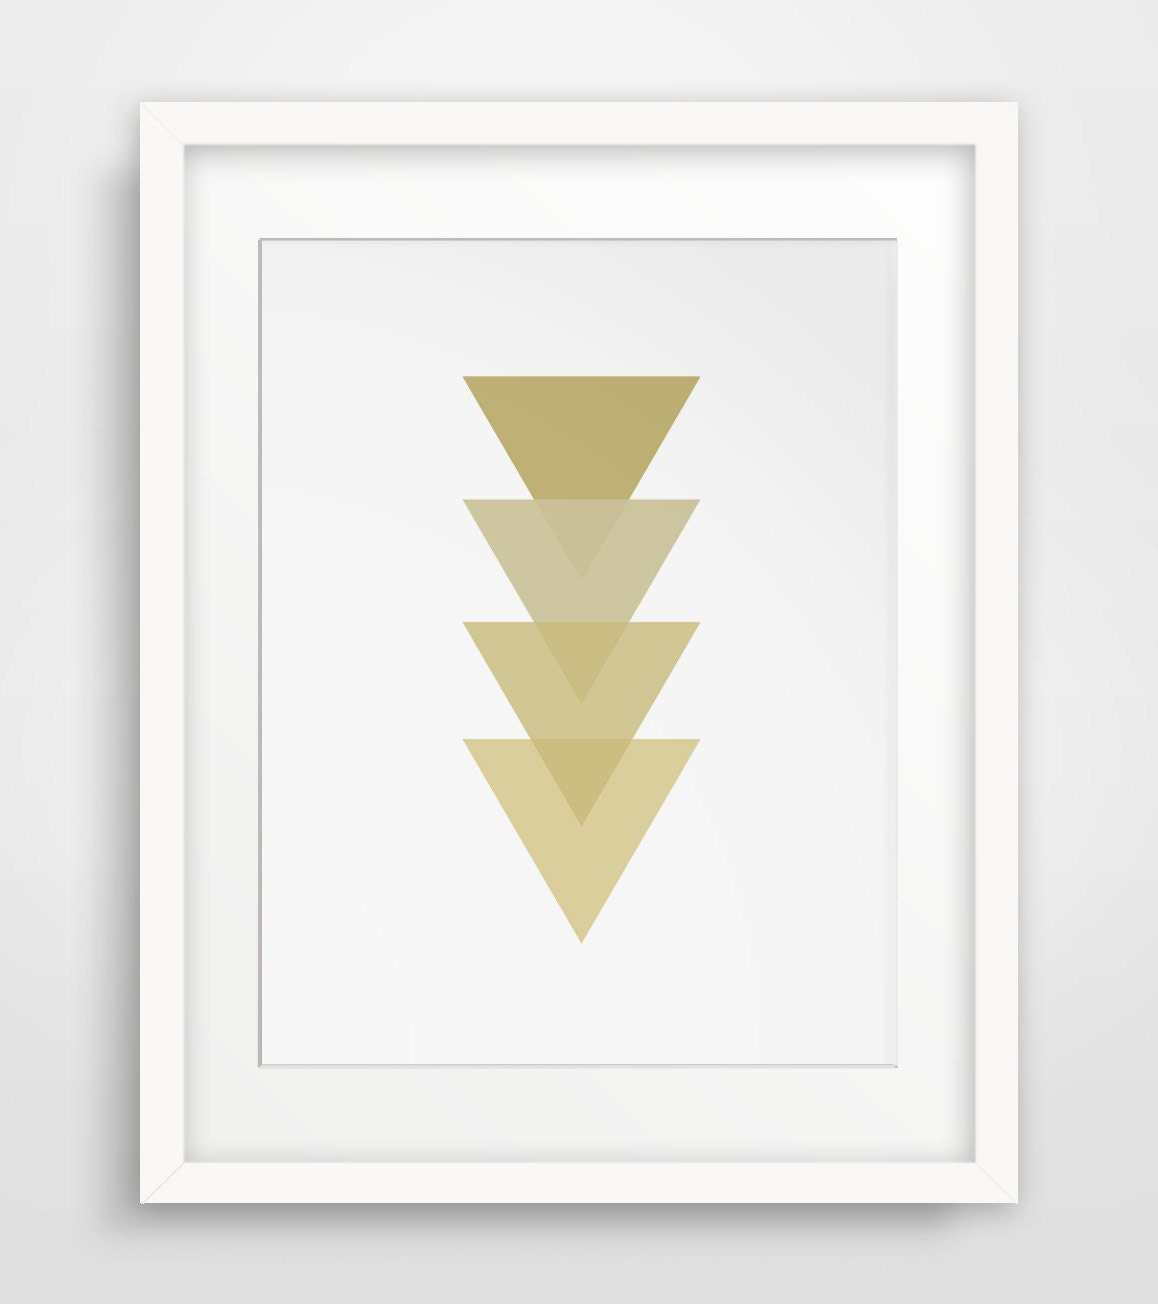 Wall Art Decor Gold : Gold geometric wall art decor